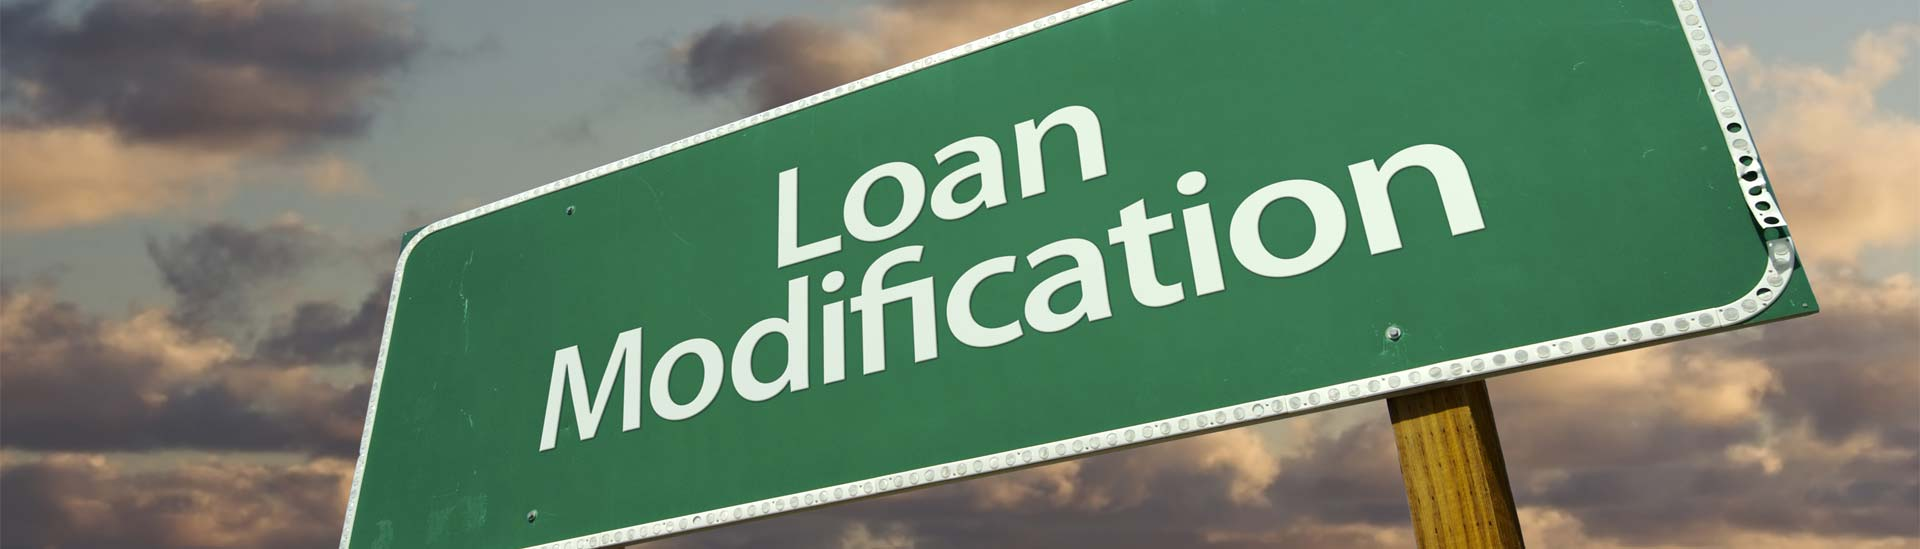 LOAN MODIFICATION MERCHANT PROCESSING SERVICES